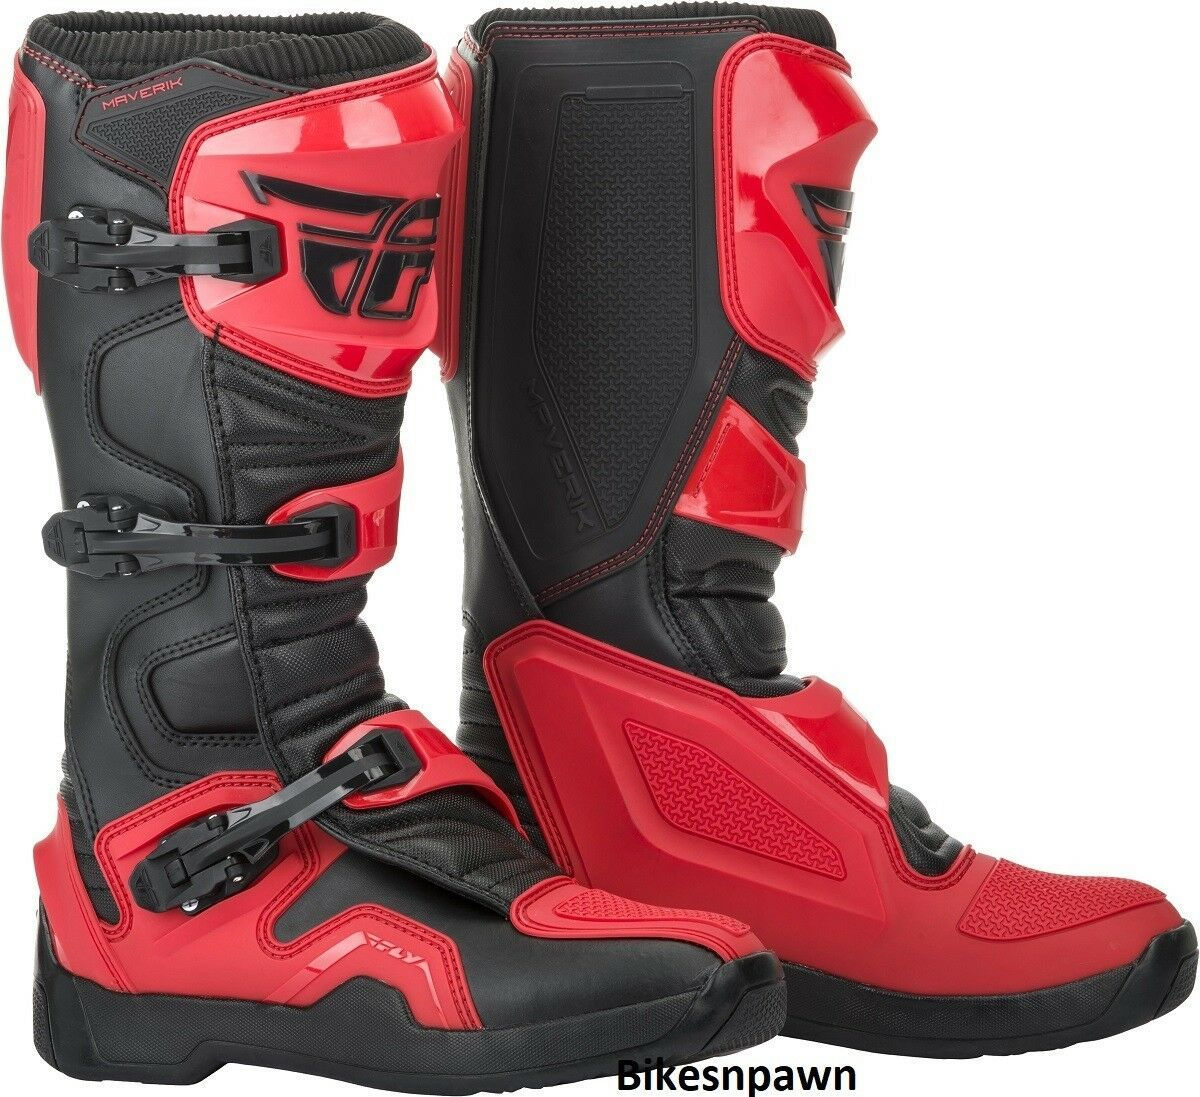 New 2019 Adult Size 12 Fly Racing Maverik Red & Black Motocross MX ATV Boots